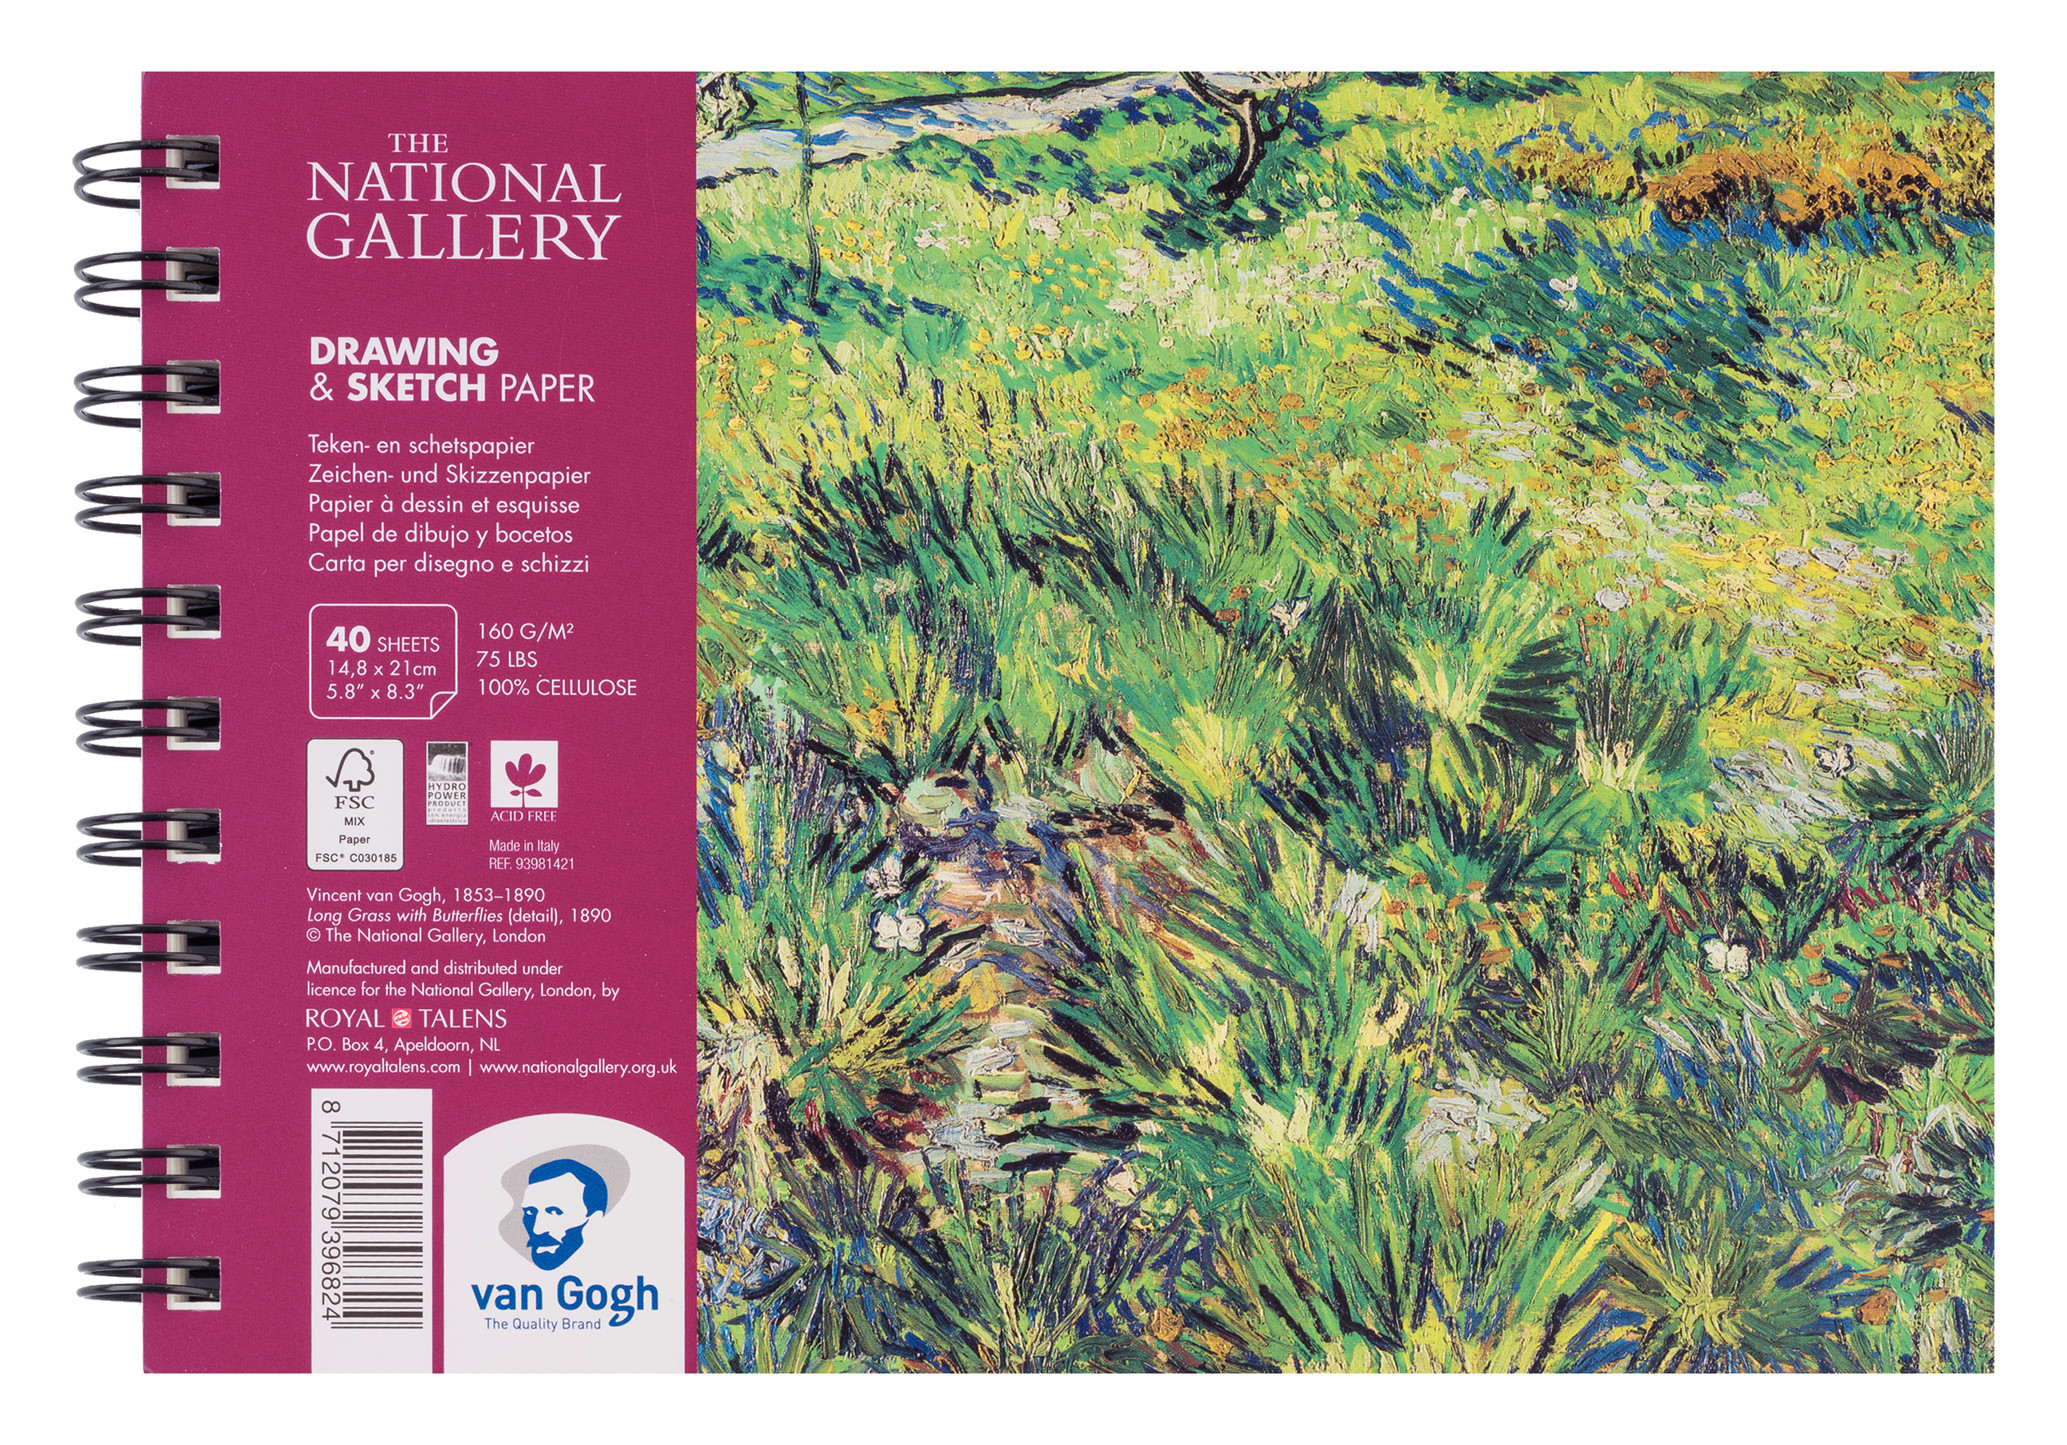 Van Gogh The National Gallery Drawing & Sketch Paper Spiral Bound Pad, 40 Sheets, 160g/75lb., size 21 x 14,8cm (A5) / 5.8 x 8.3